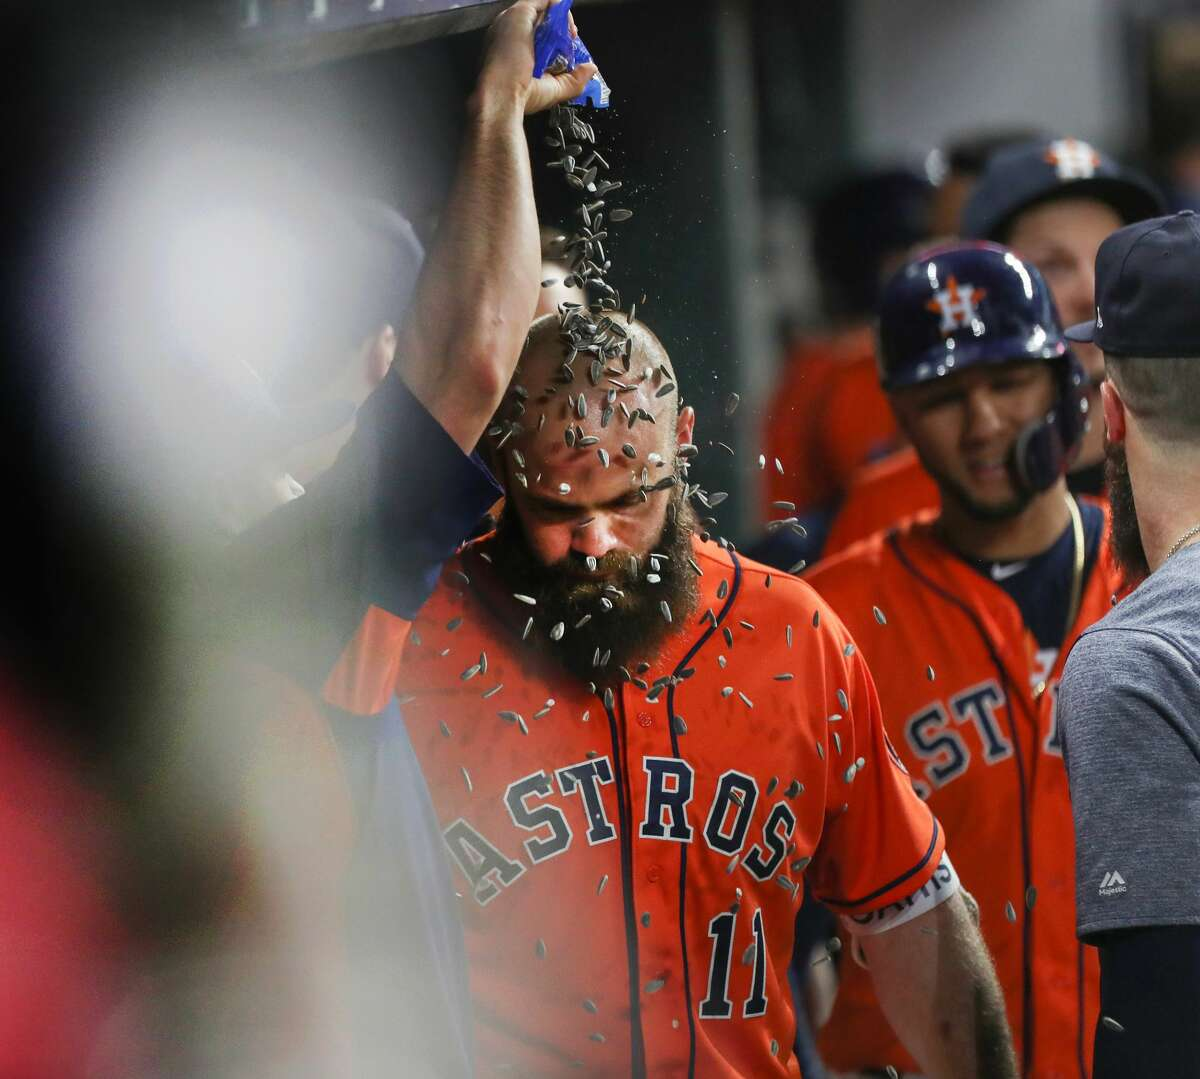 Houston Astros catcher Evan Gattis (11) receives a sunflower seed shower after scoring a two-run homer during the 9th inning of an MLB baseball game at Minute Maid Park Friday, June 1, 2018, in Houston. Houston Astros first baseman ( Steve Gonzales / Houston Chronicle )